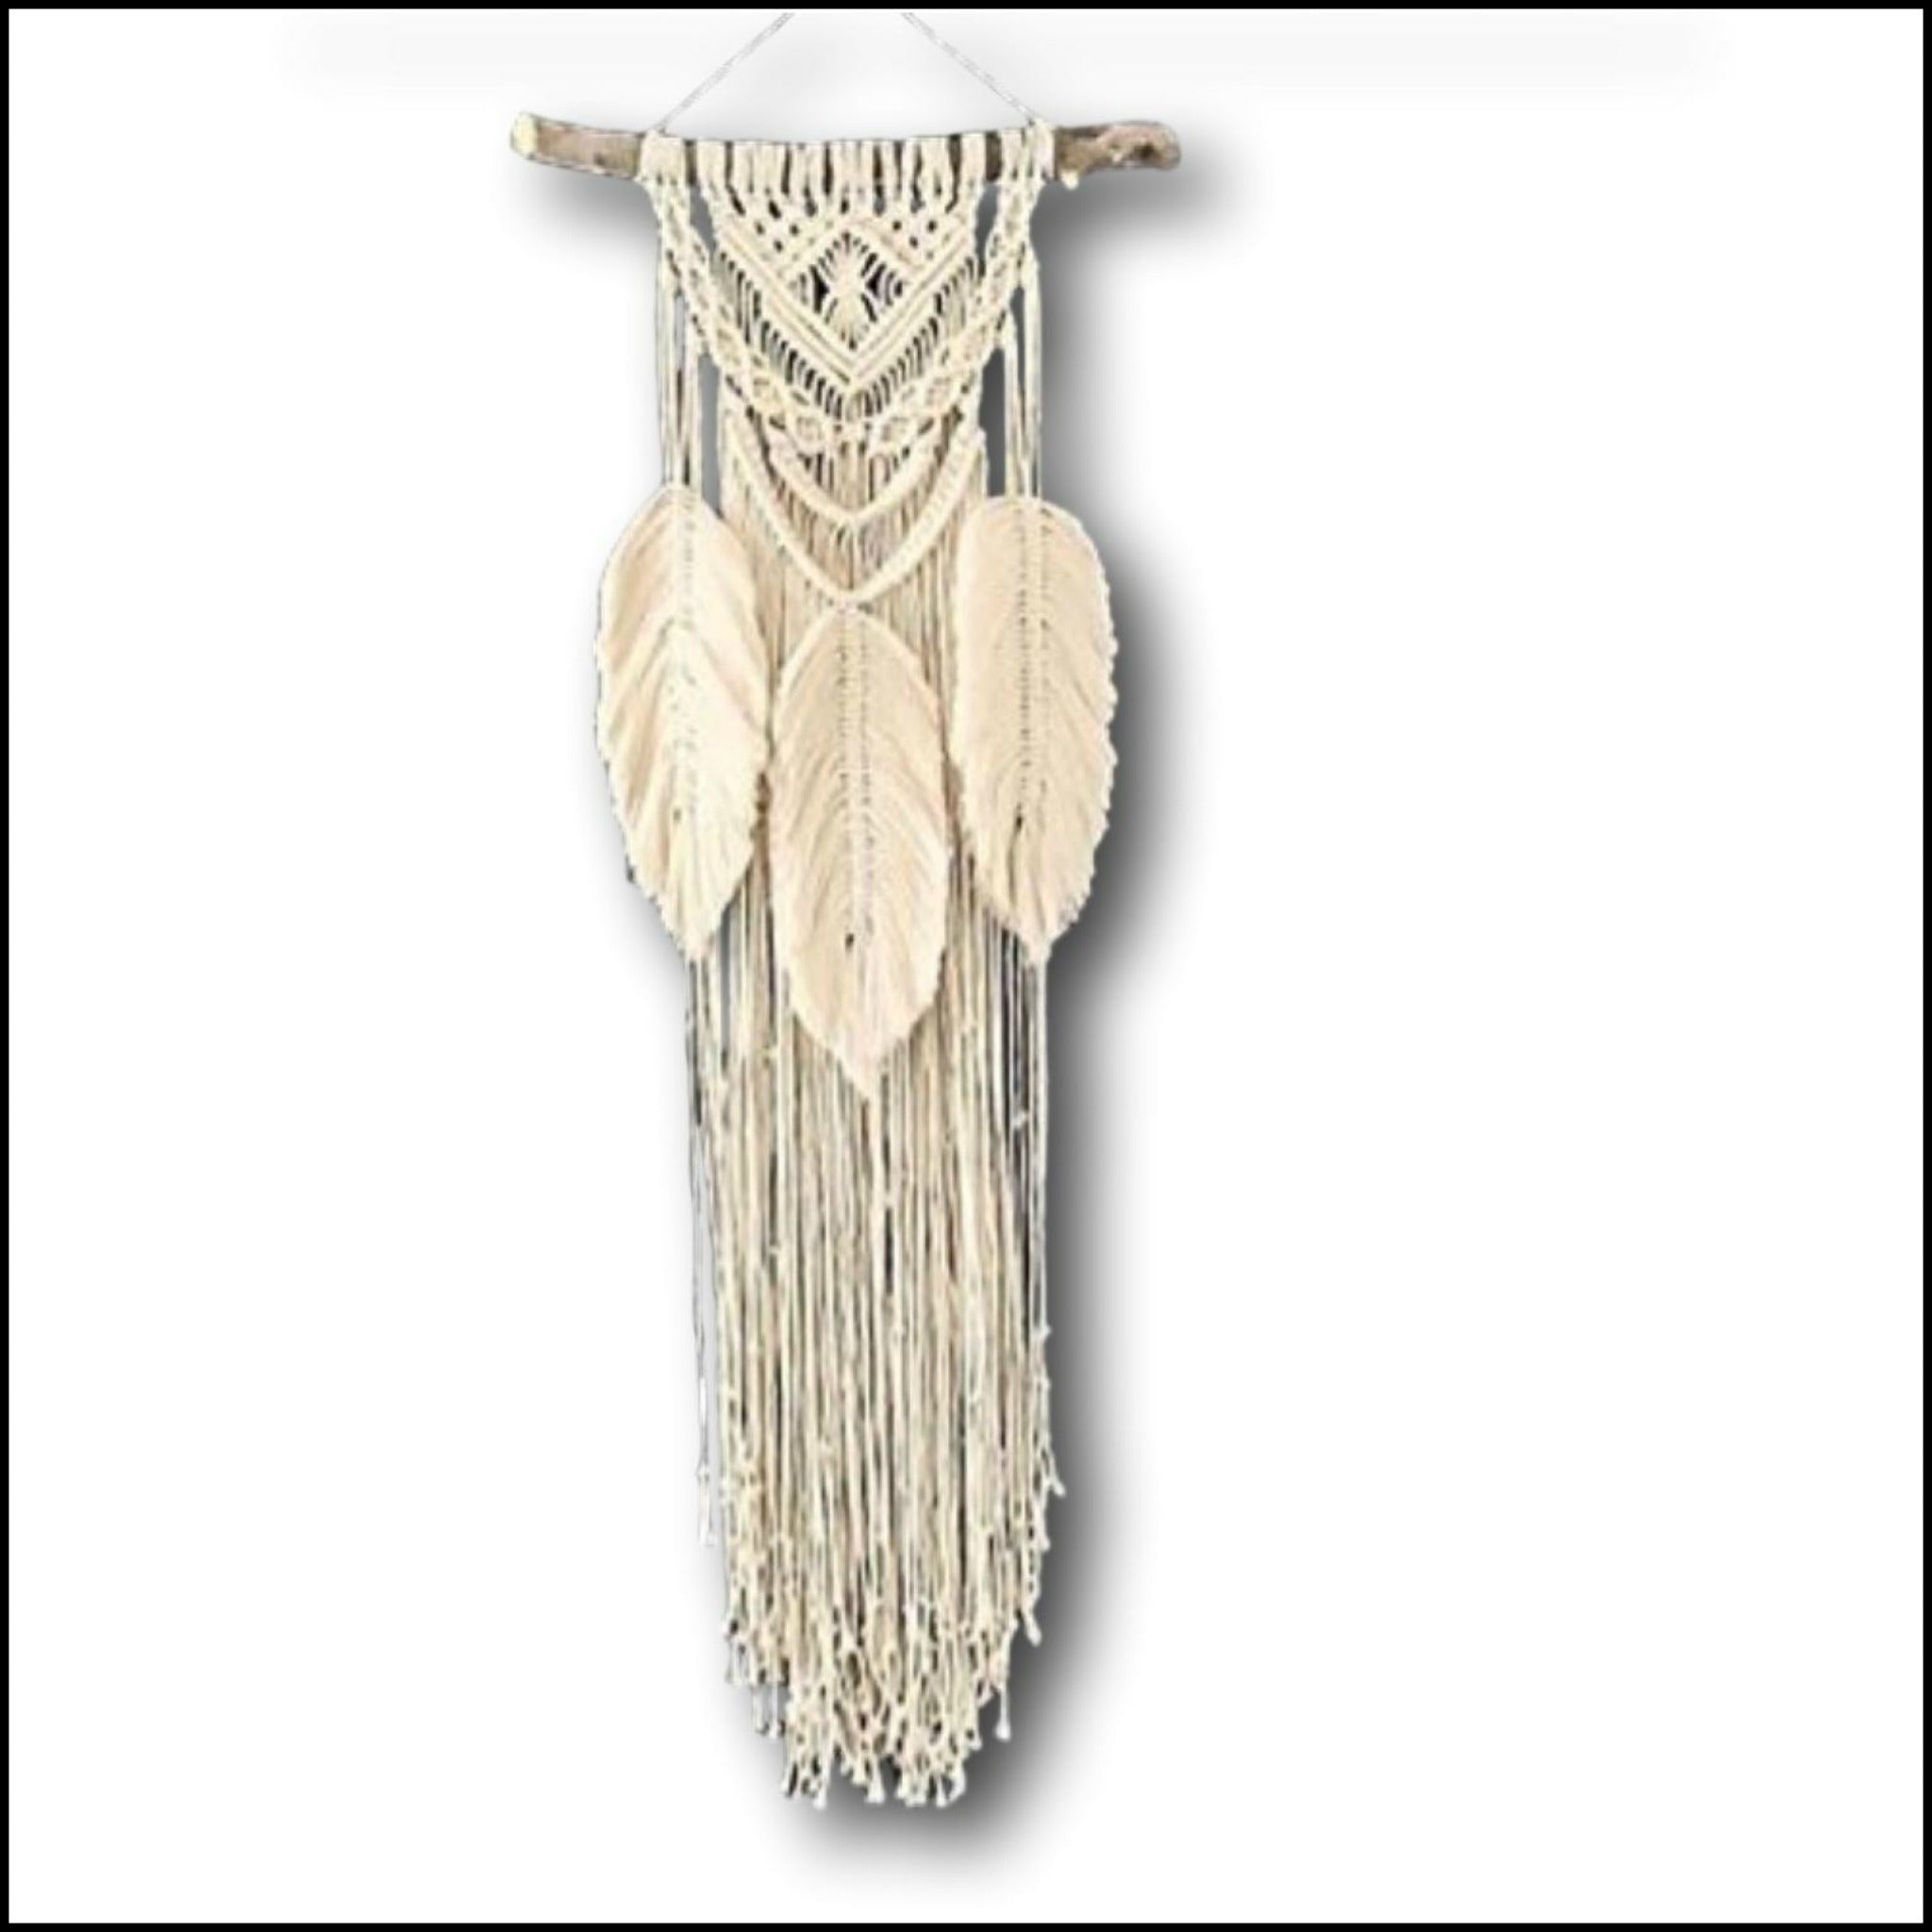 Boho Macrame Feather and Fringe Wall Hanging